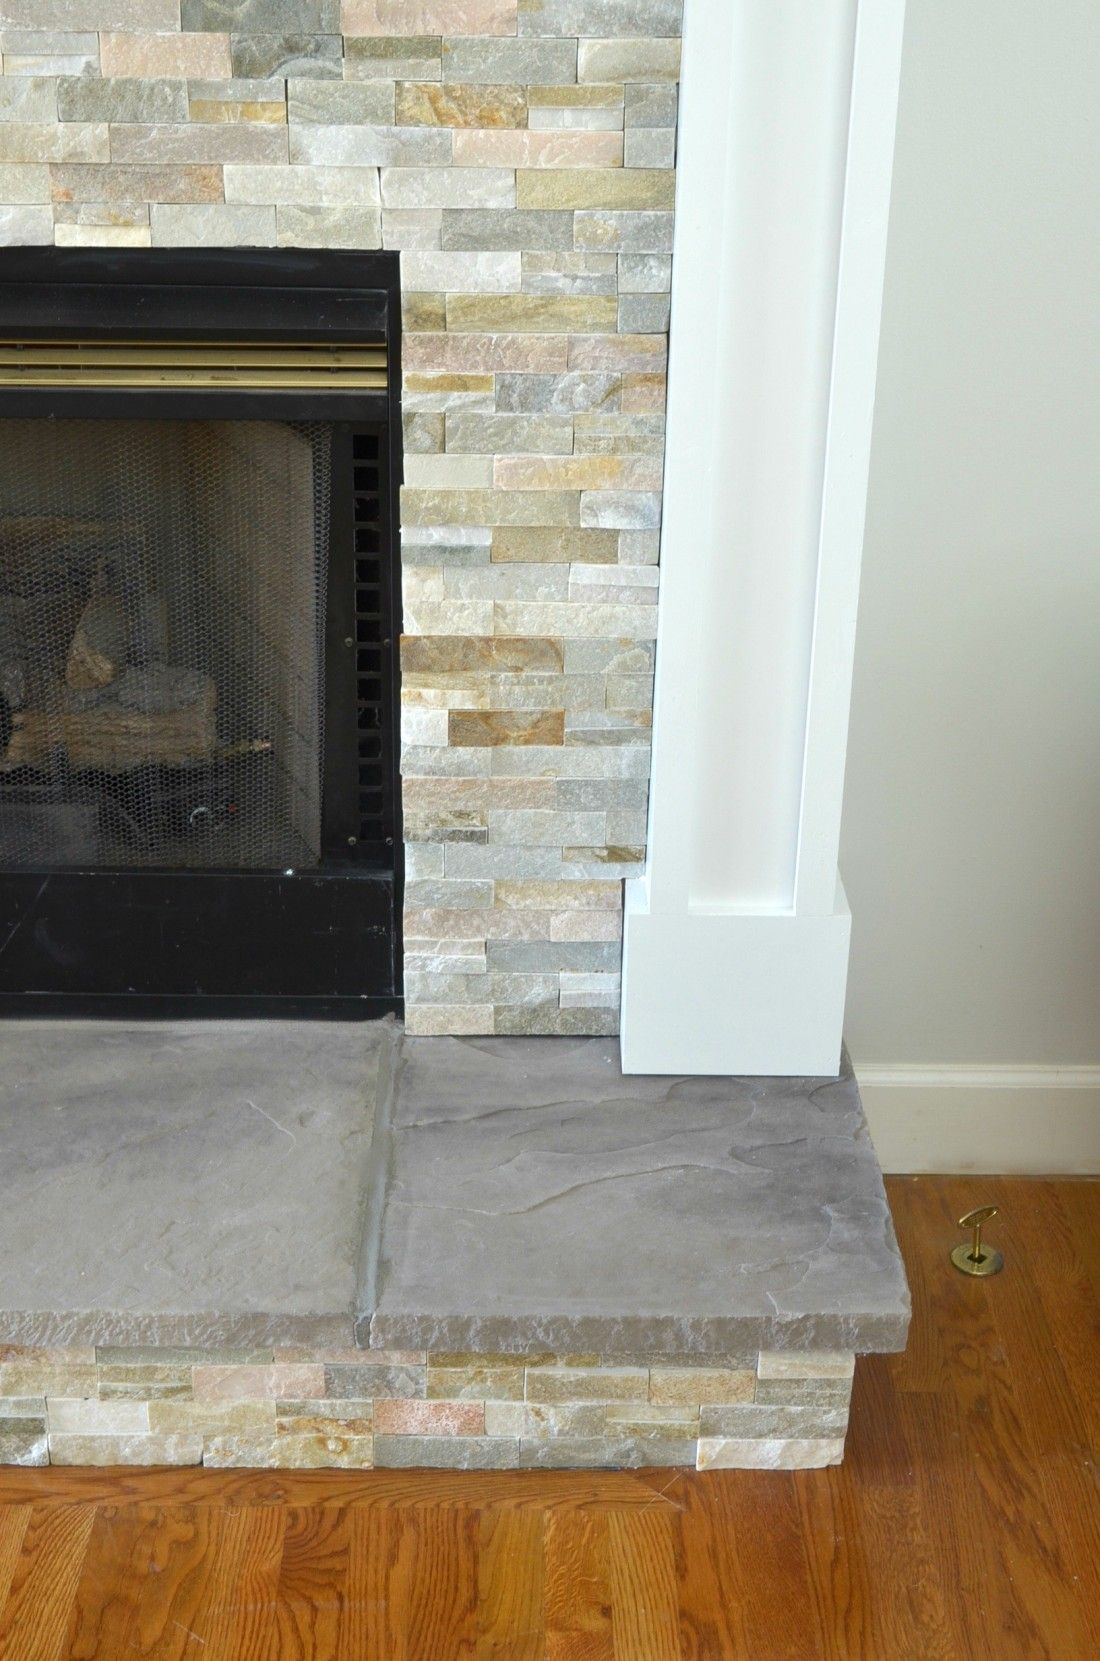 Diy Fireplace Makeover At Home With The Barkers Fireplace Hearth Tiles Diy Fireplace Makeover Fireplace Remodel